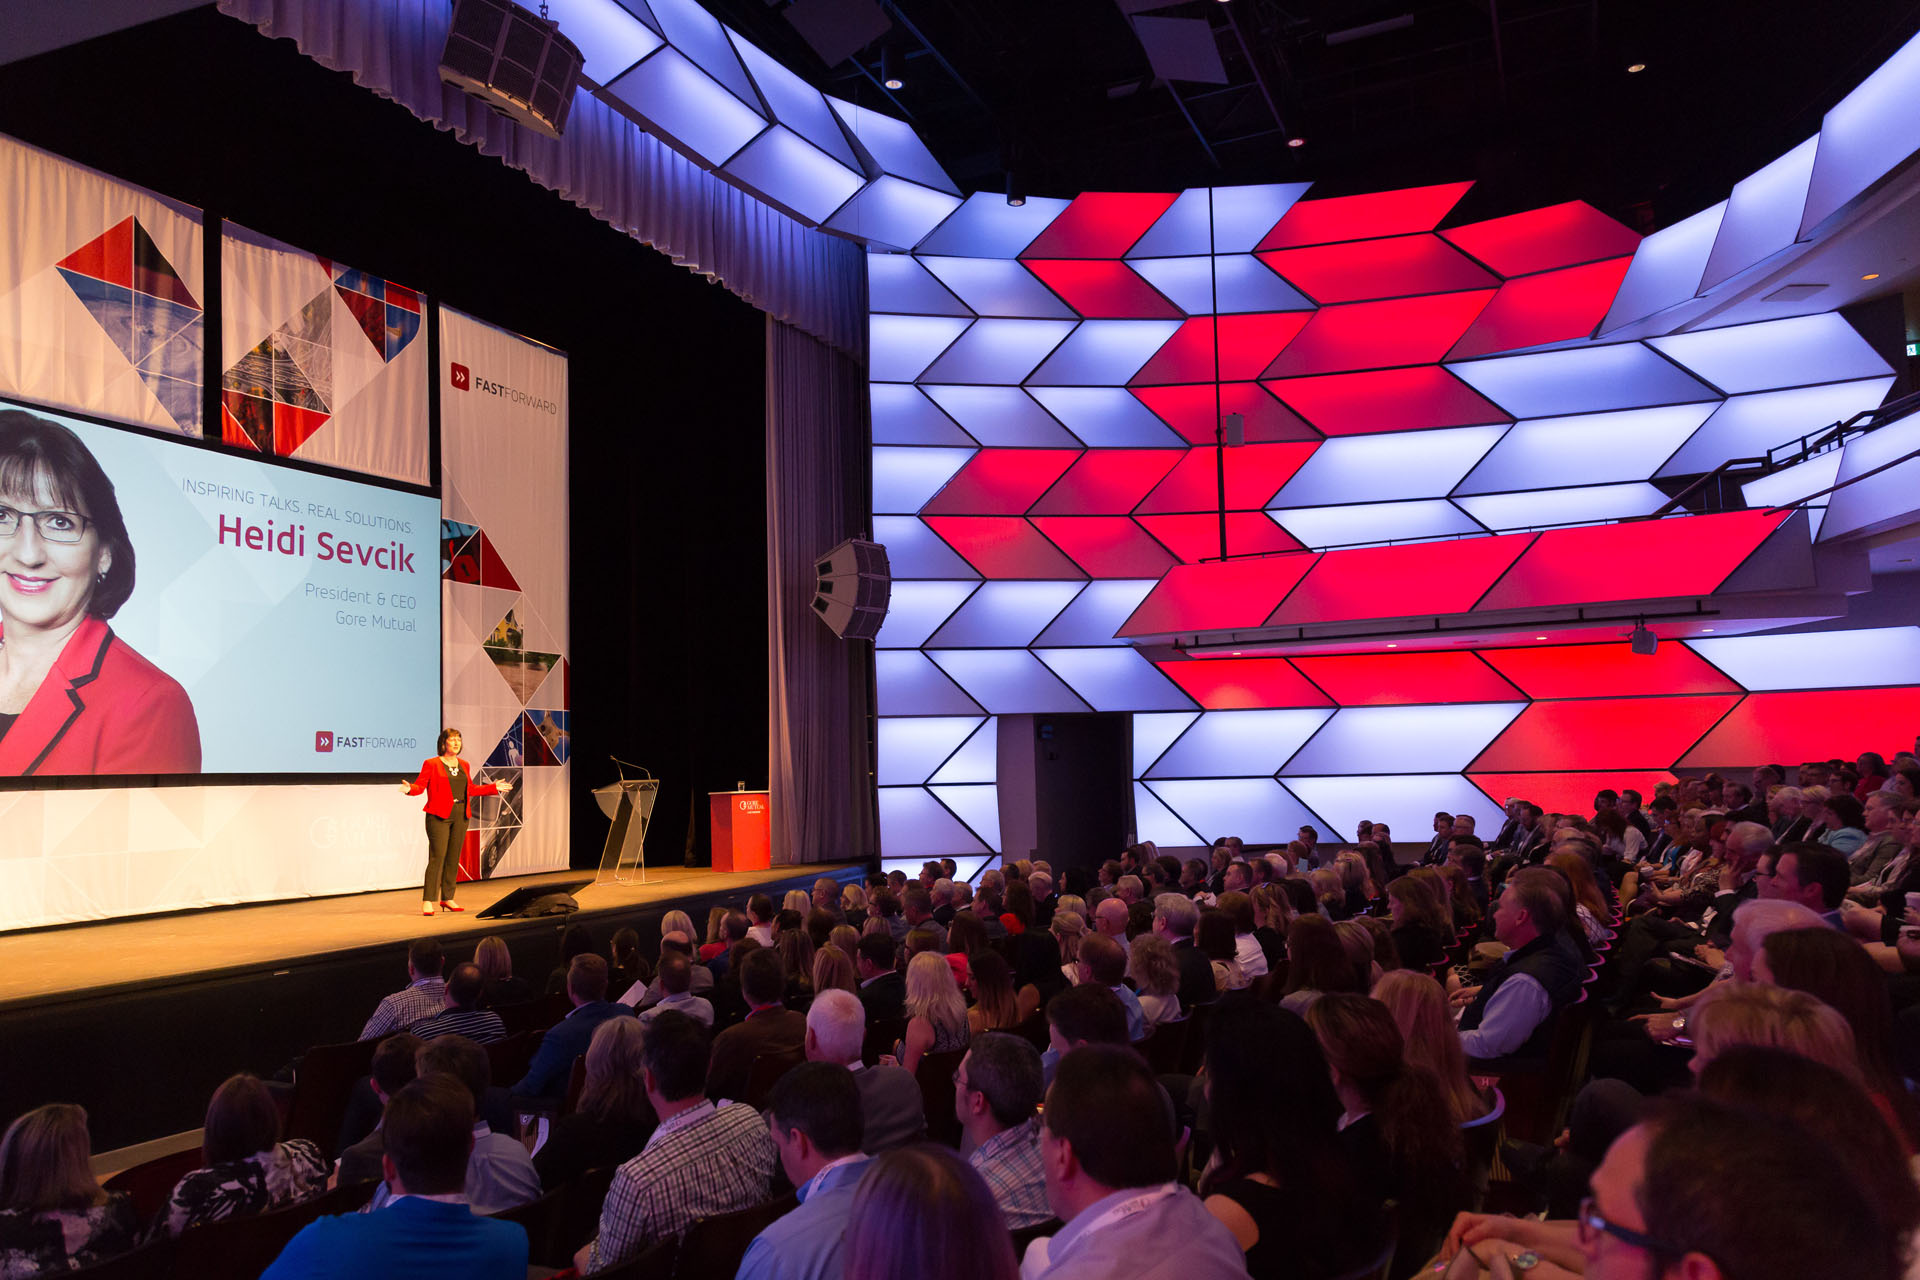 Picture of Heidi Sevcik presenting in front of crowed